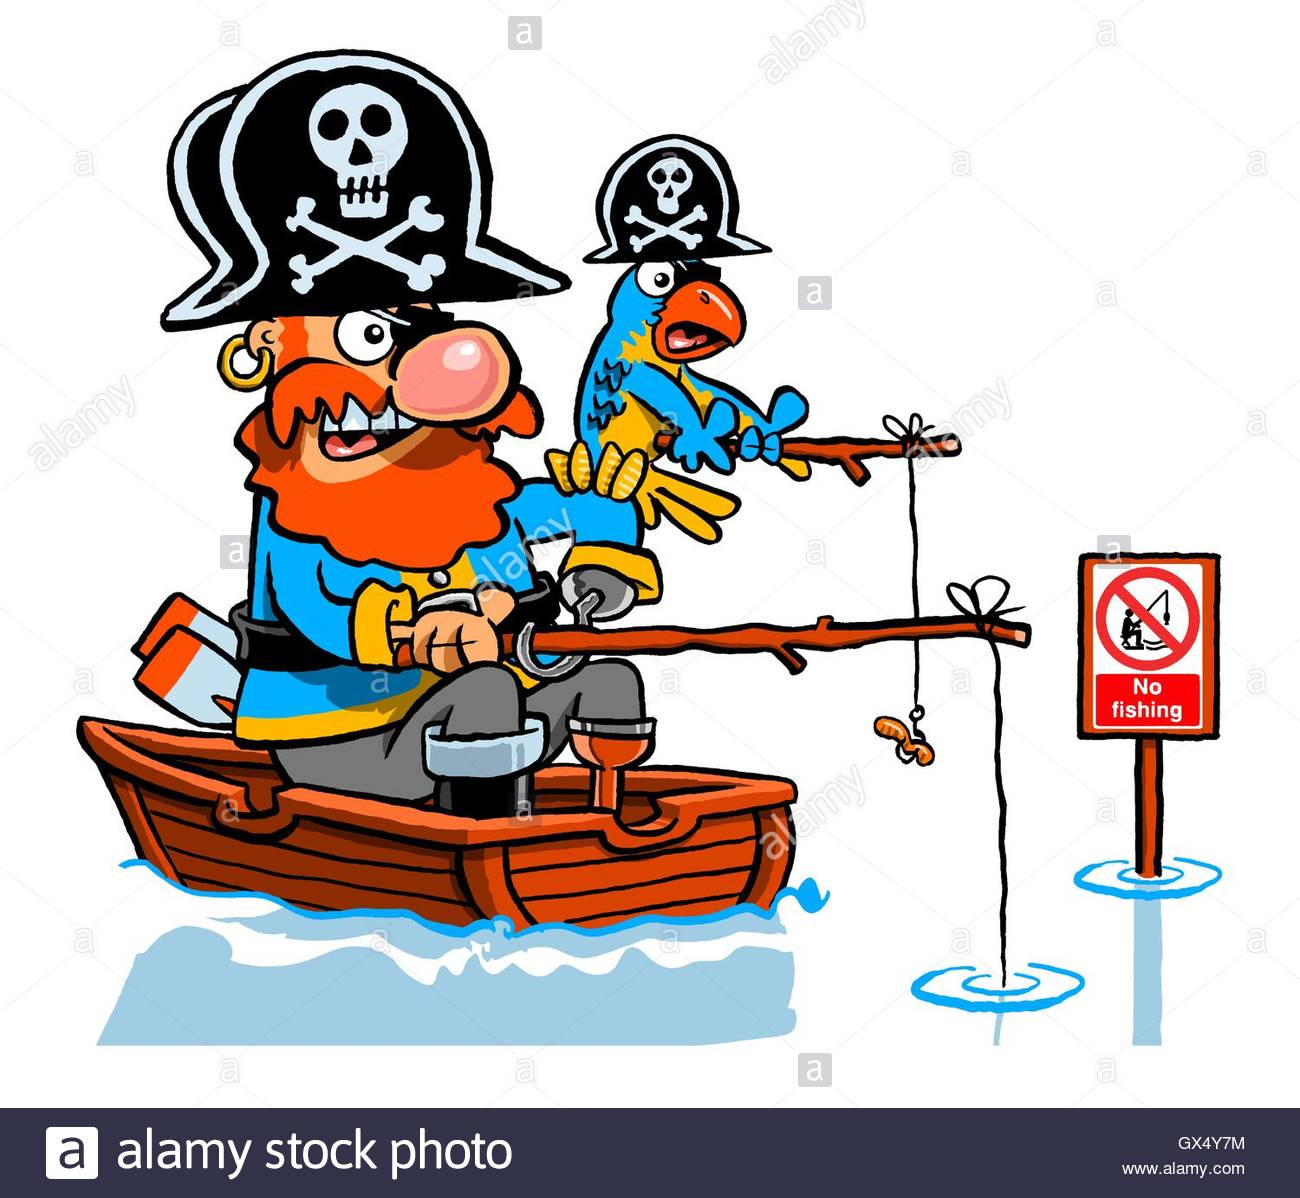 Cartoon caricature of pirate and parrot fishing in a boat for Fishing spots near me no boat